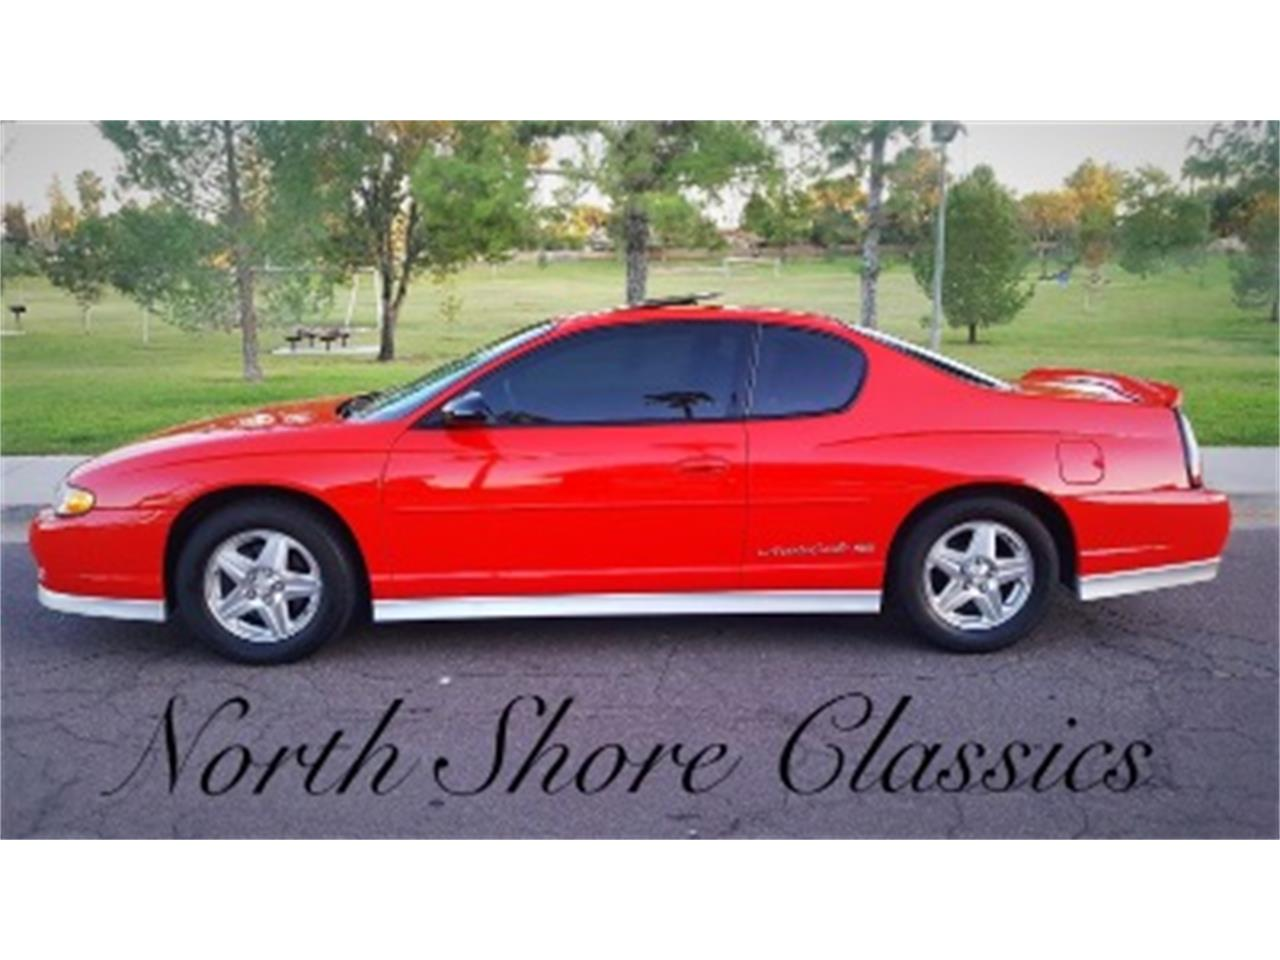 Large Picture of '01 Chevrolet Monte Carlo - $10,900.00 Offered by North Shore Classics - MFFA